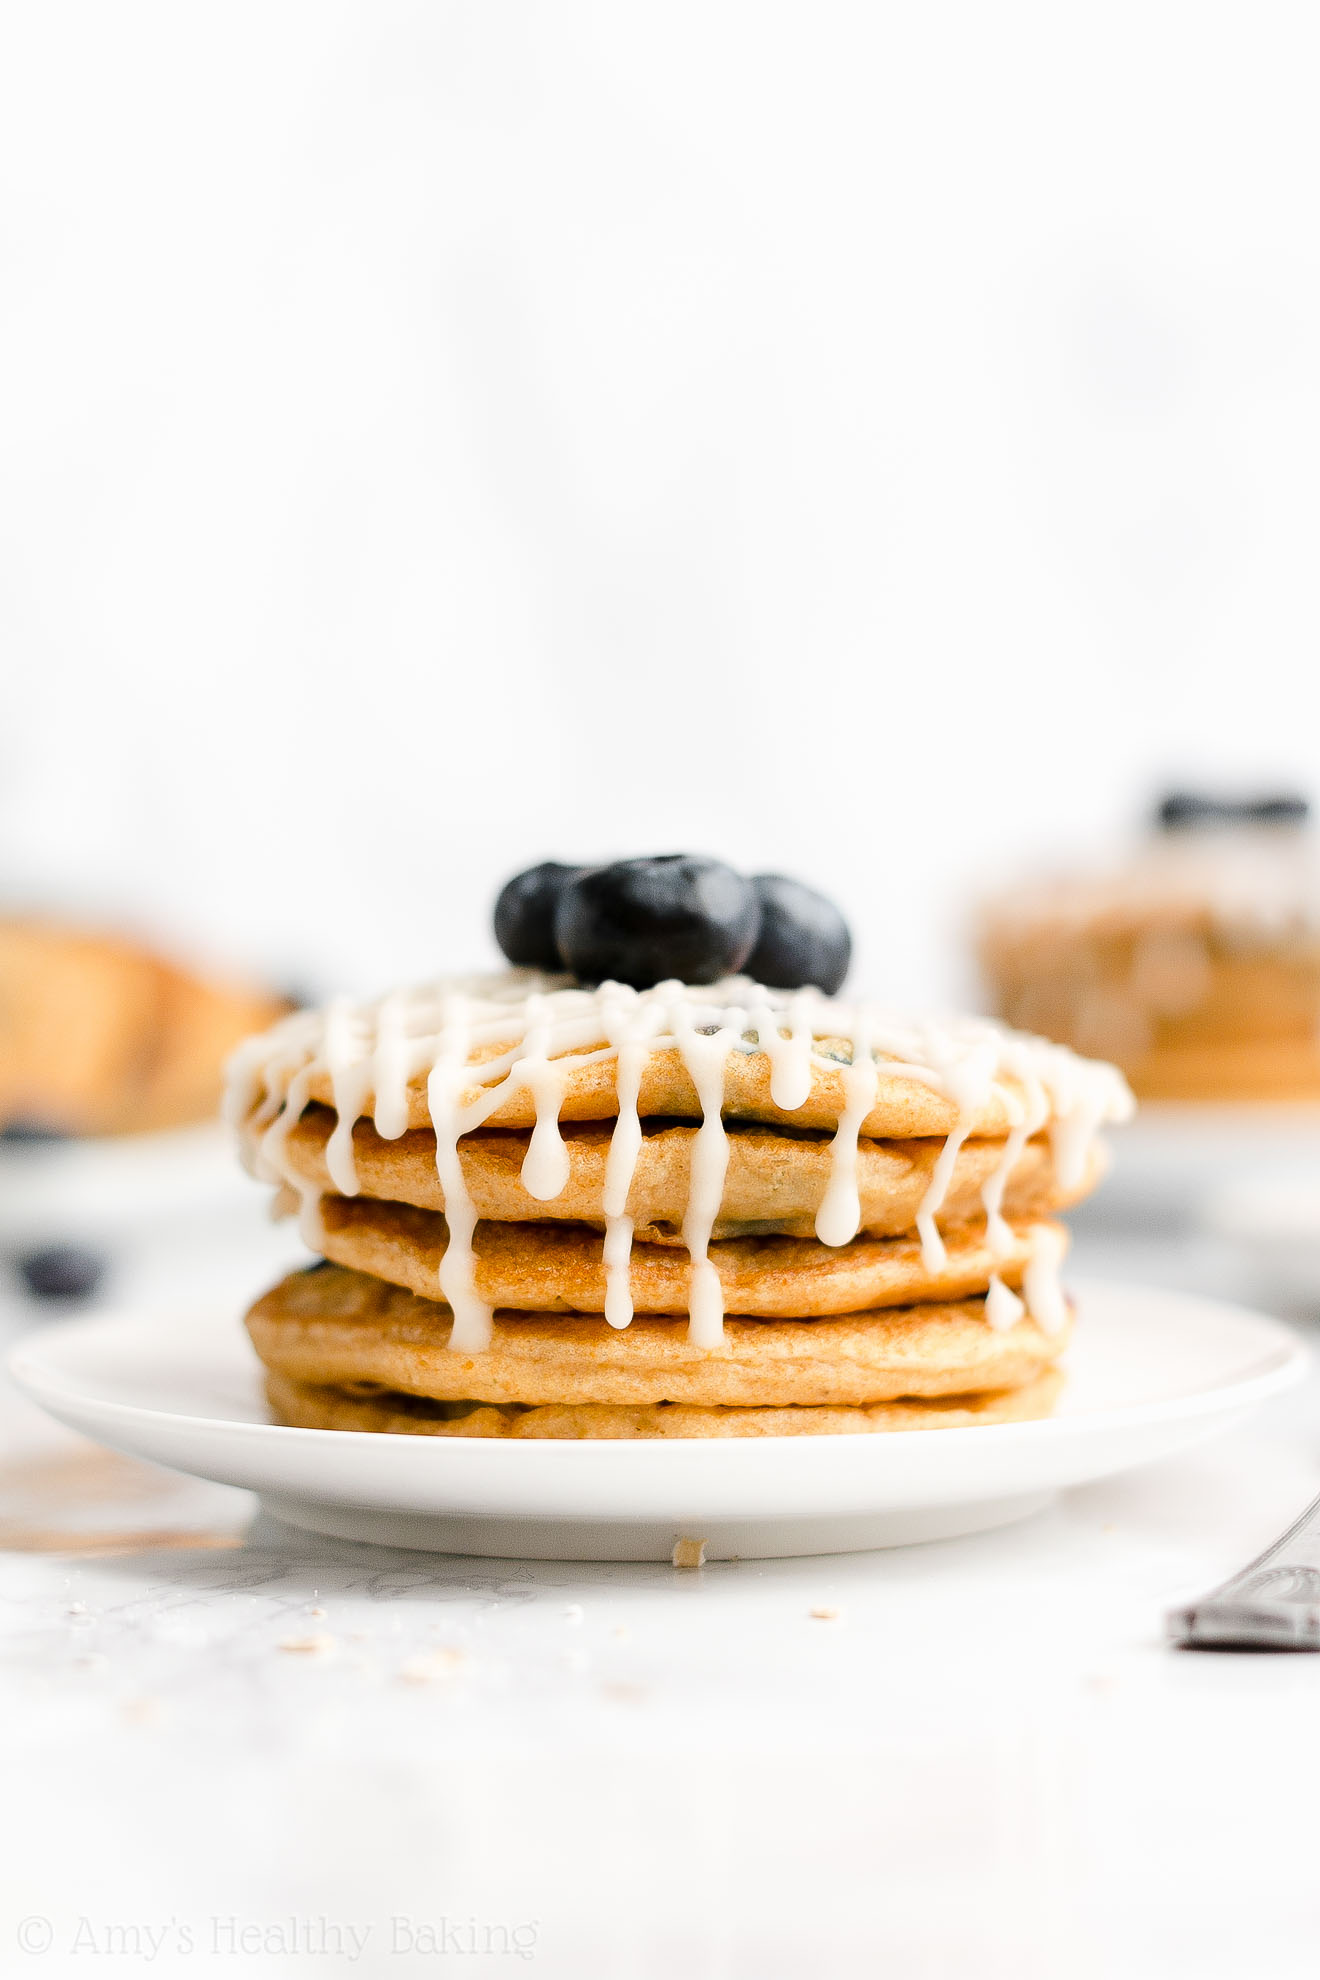 Easy Healthy Clean Eating Whole Wheat Fluffy Blueberry Oatmeal Pancakes